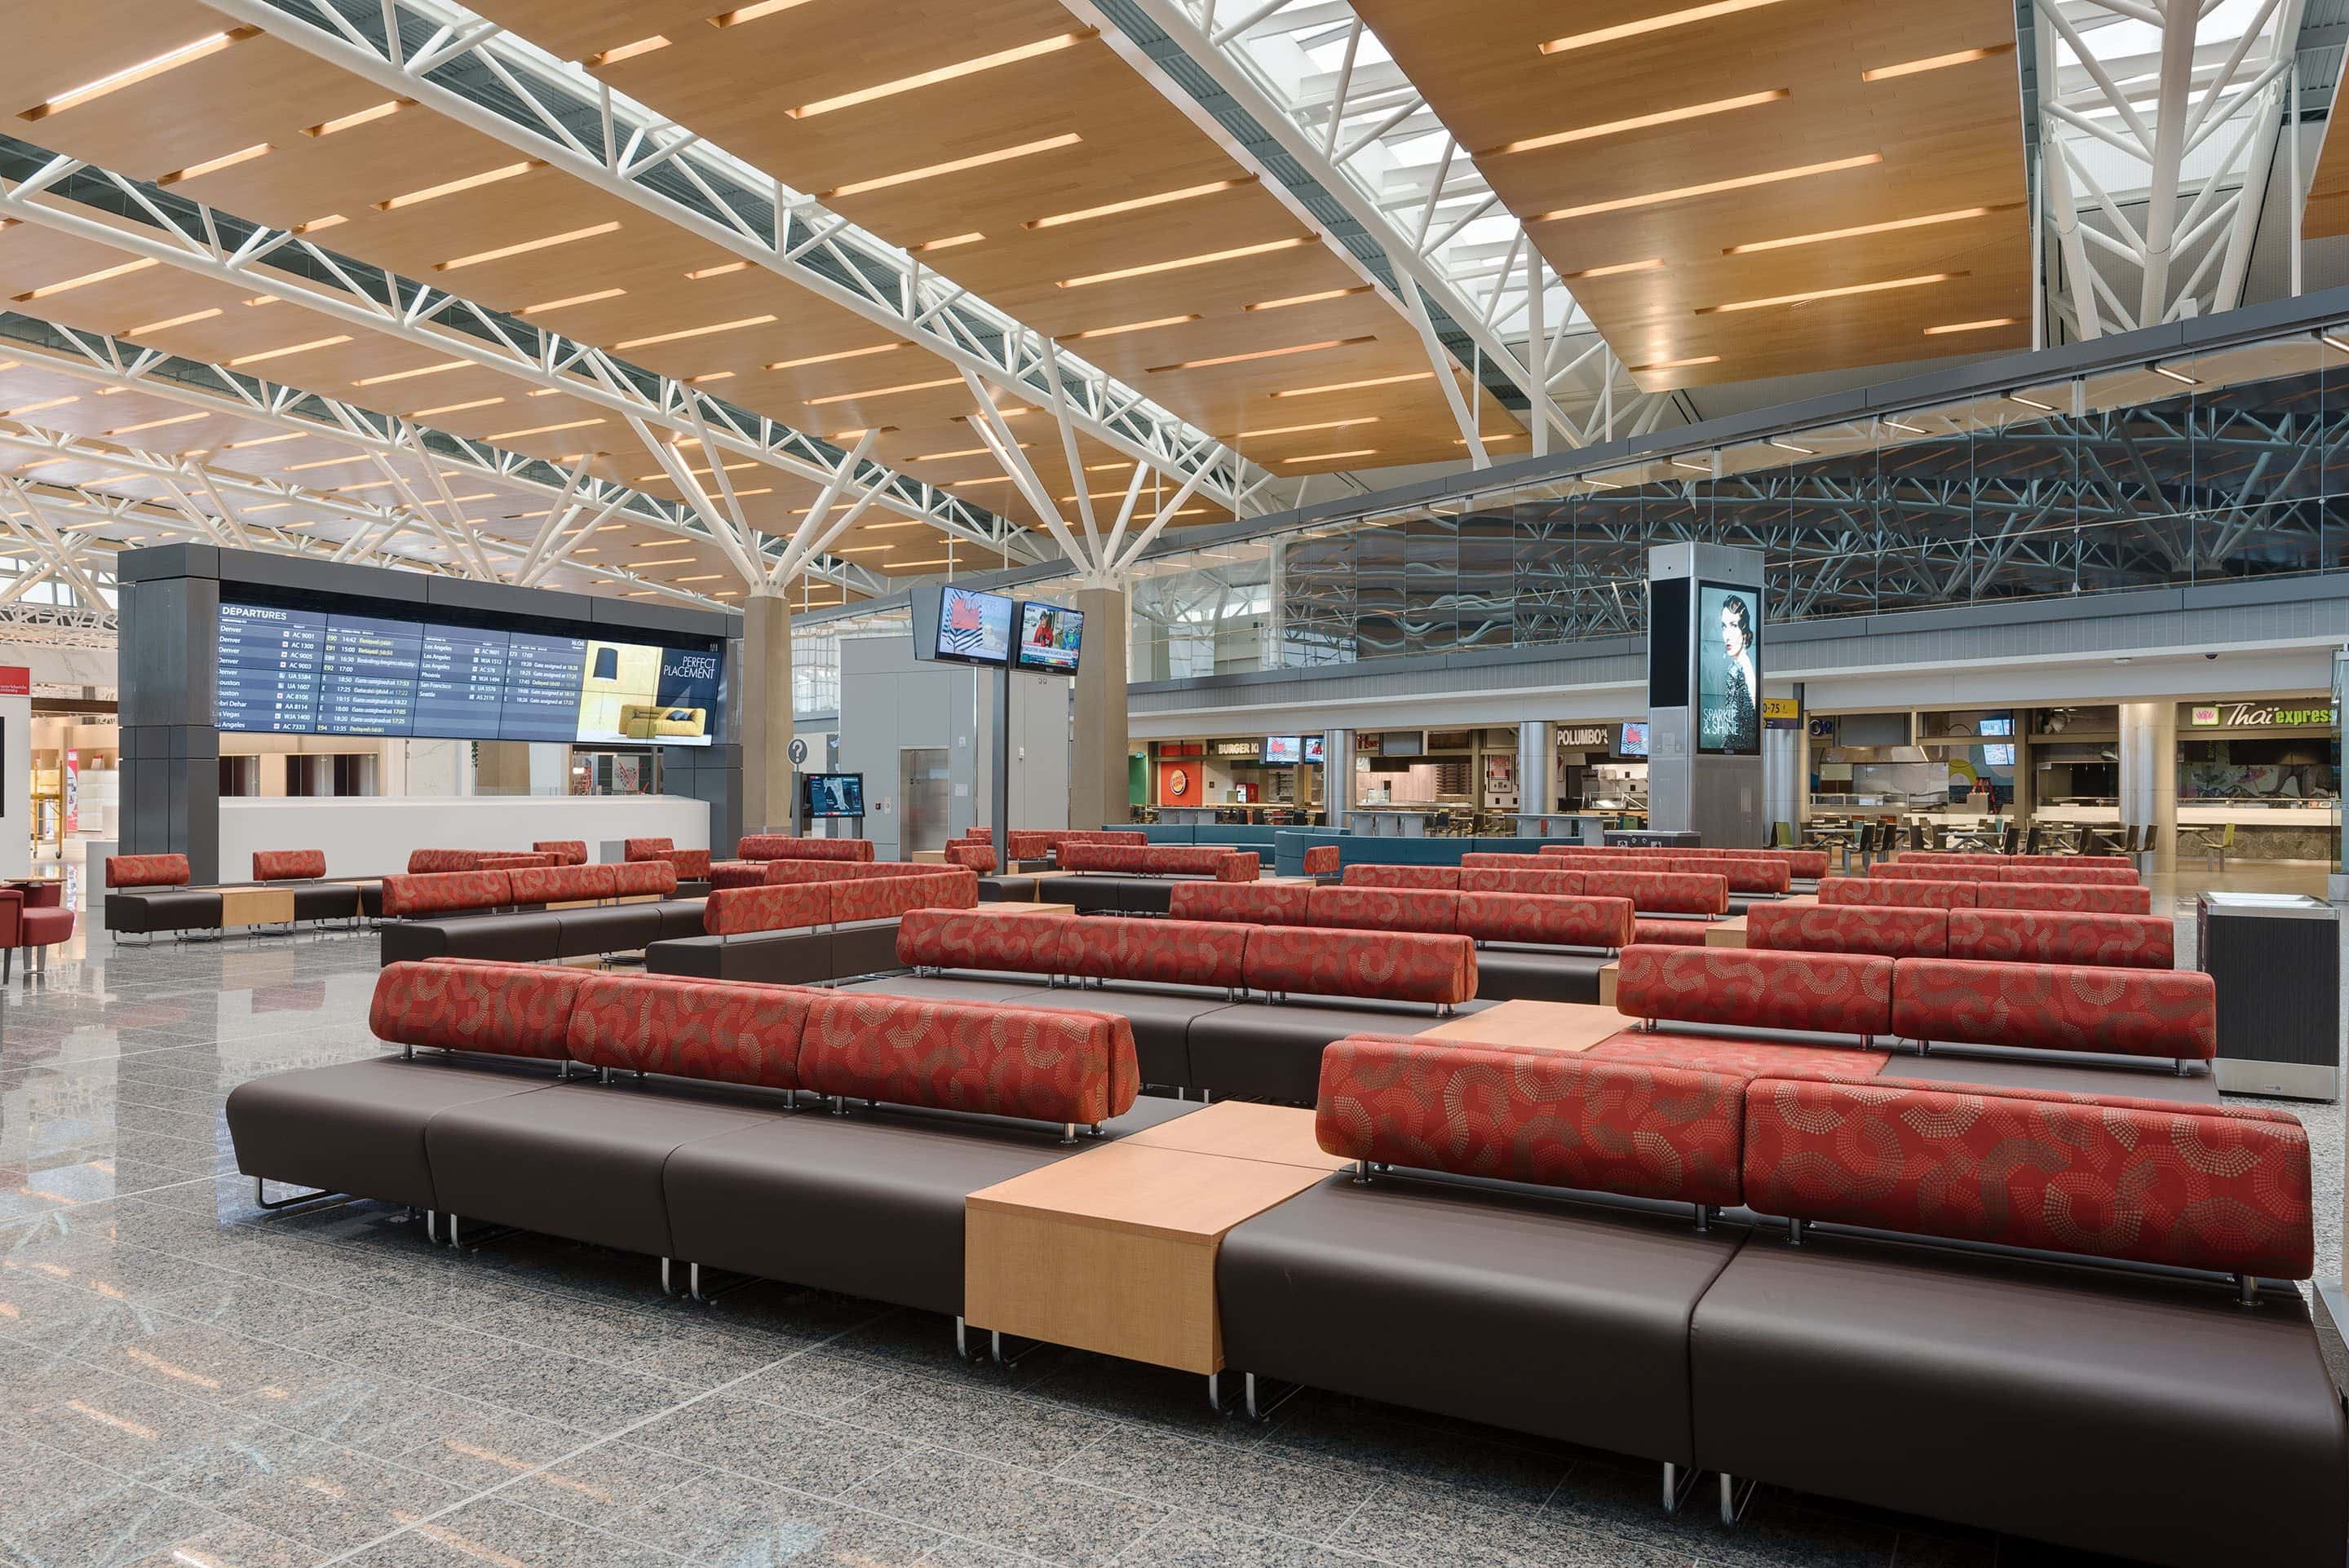 Photo of the interior of the Calgary International Airport featuring furniture made by KI Furniture